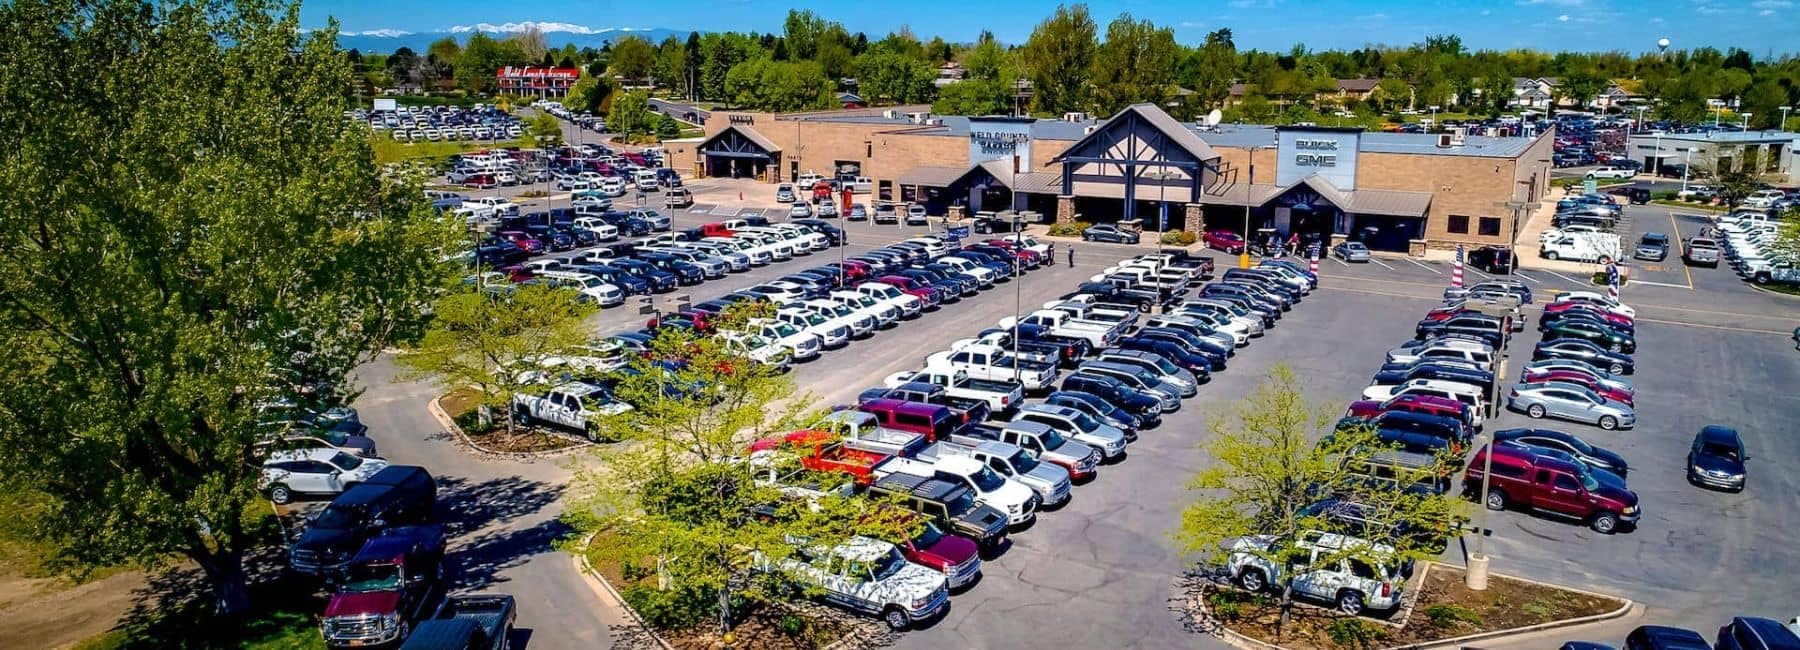 aerial view of the dealership during the day